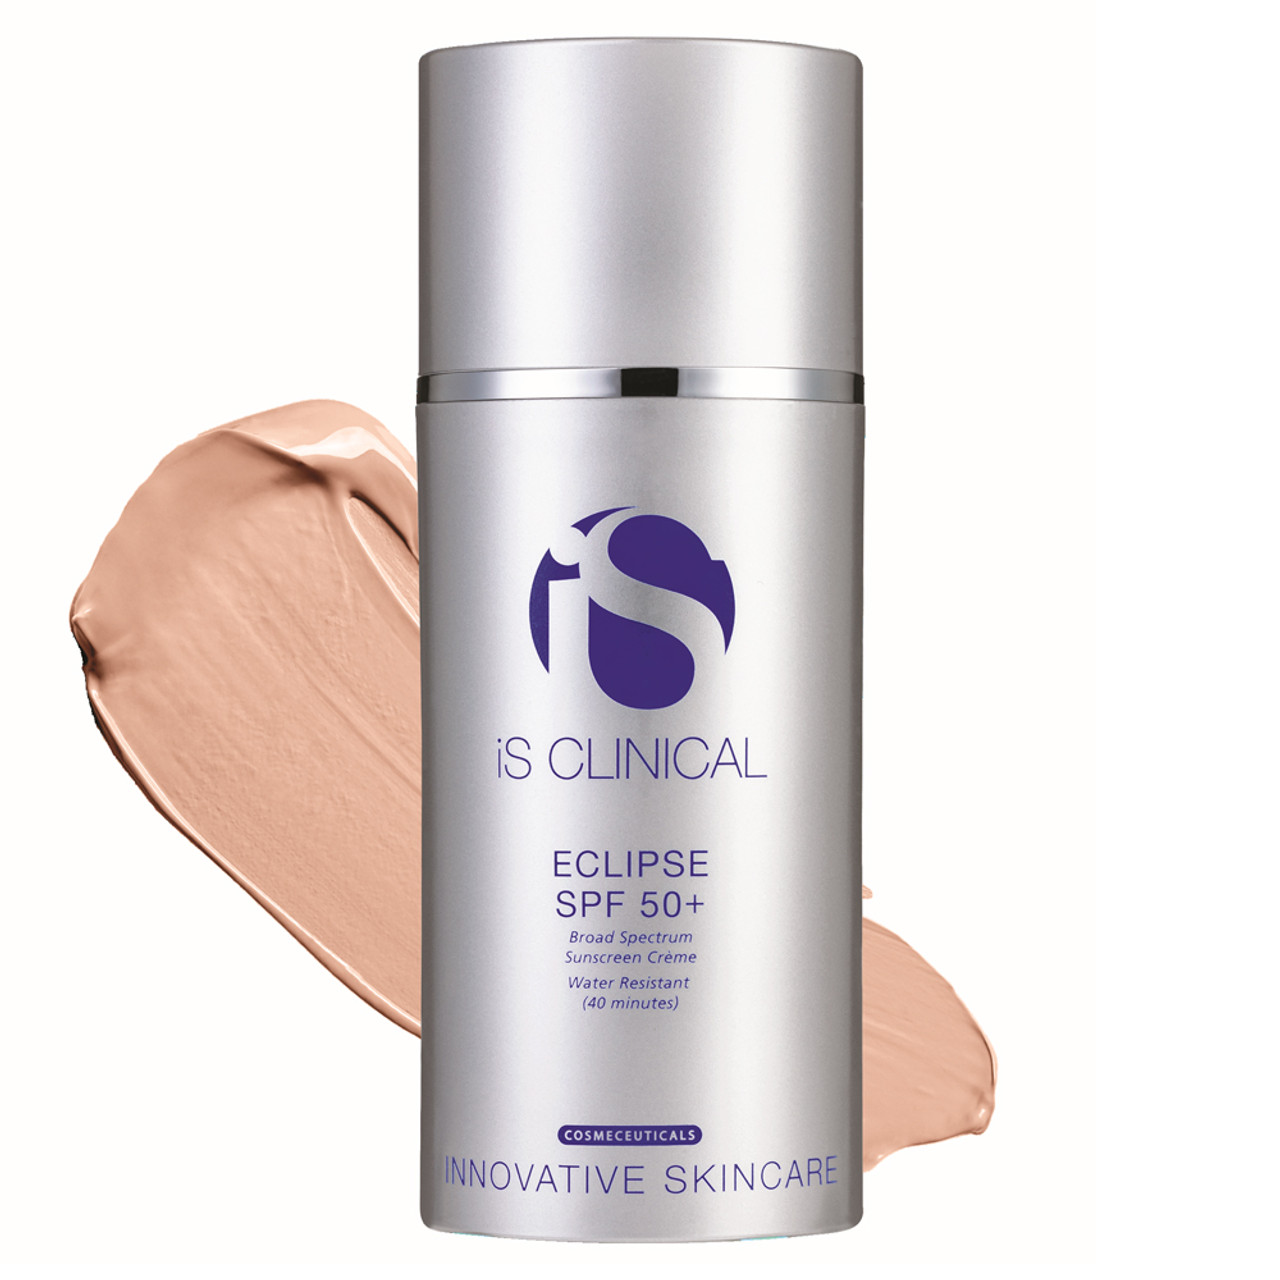 iS Clinical Eclipse SPF 50+ Ultra Sheer